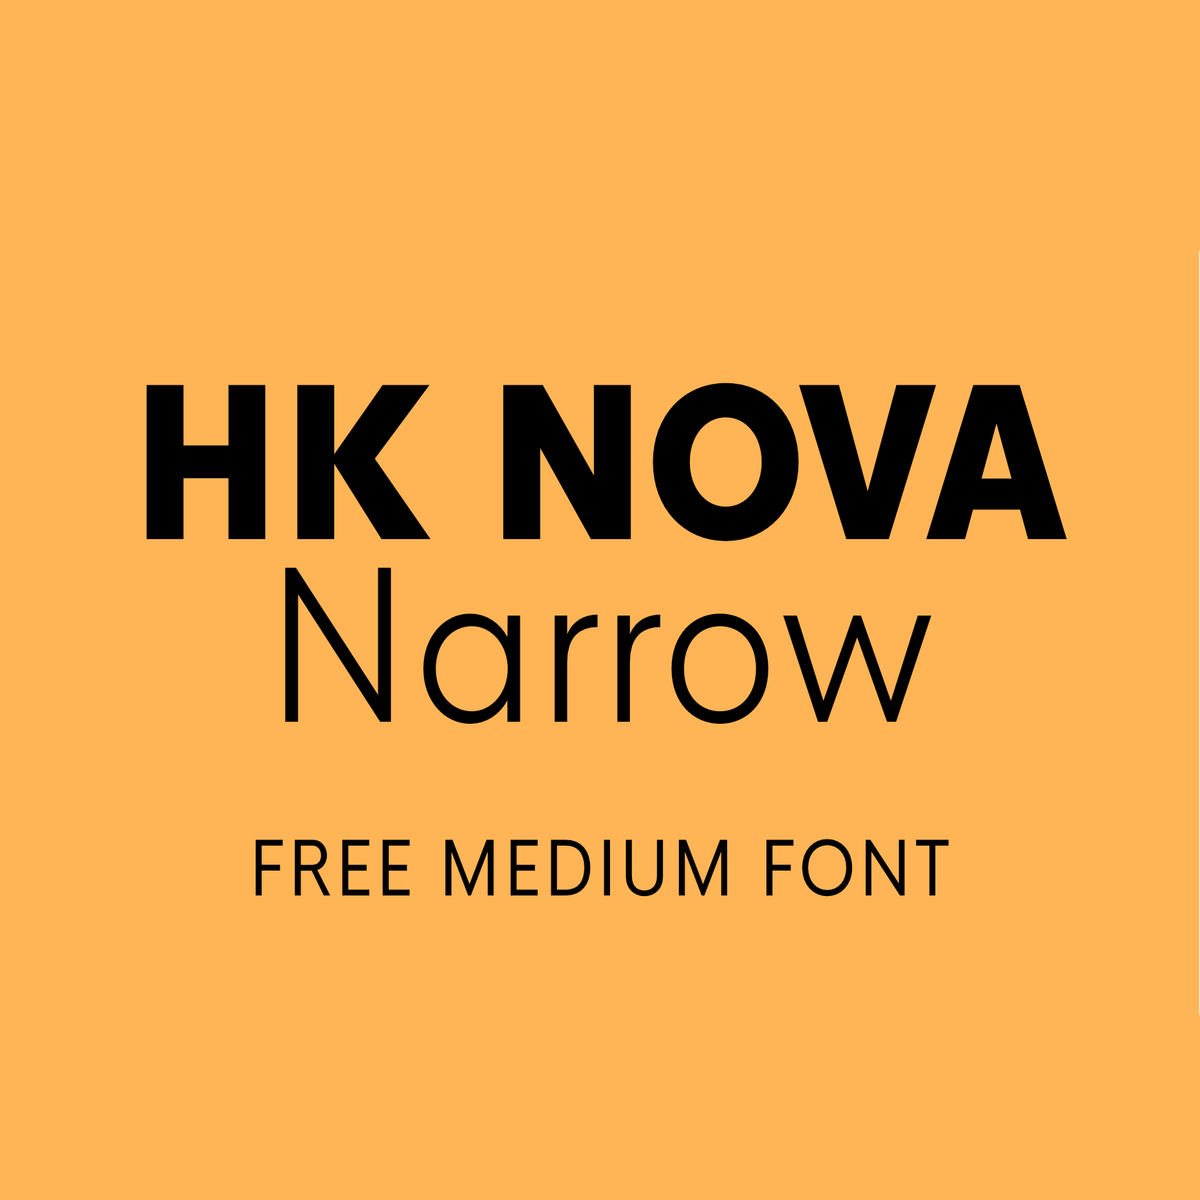 Hk Nova Narrow Medium Is Free To Use On Your Personal And Commercial Projects